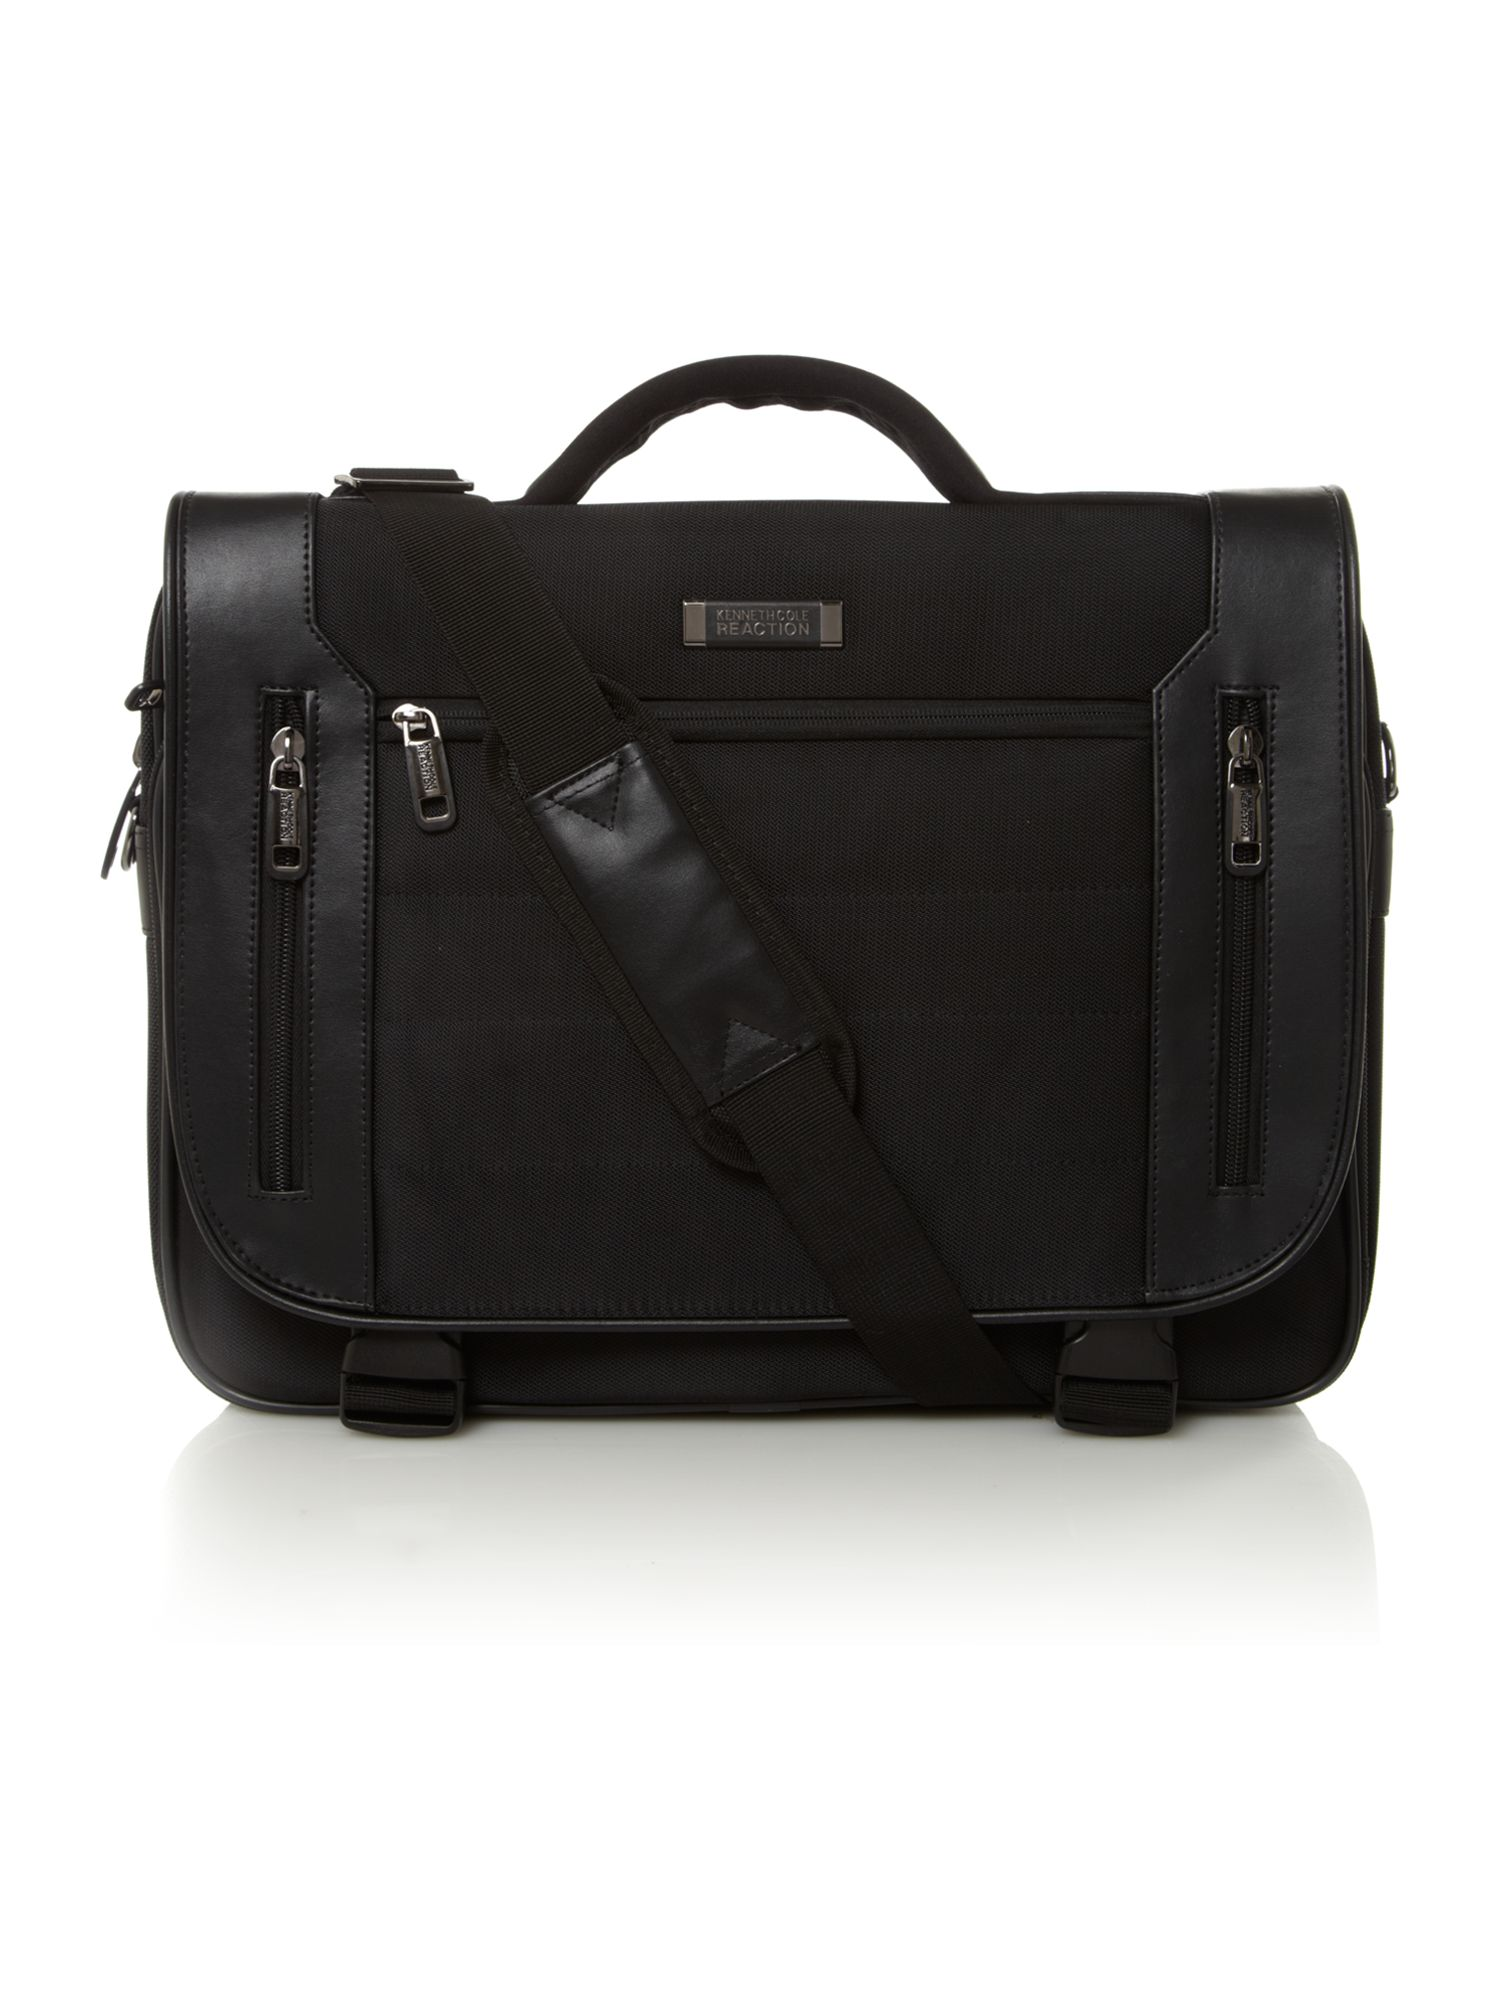 Kenneth Cole Reaction 5.25 Tpl Gusset Case 17.3 Computer